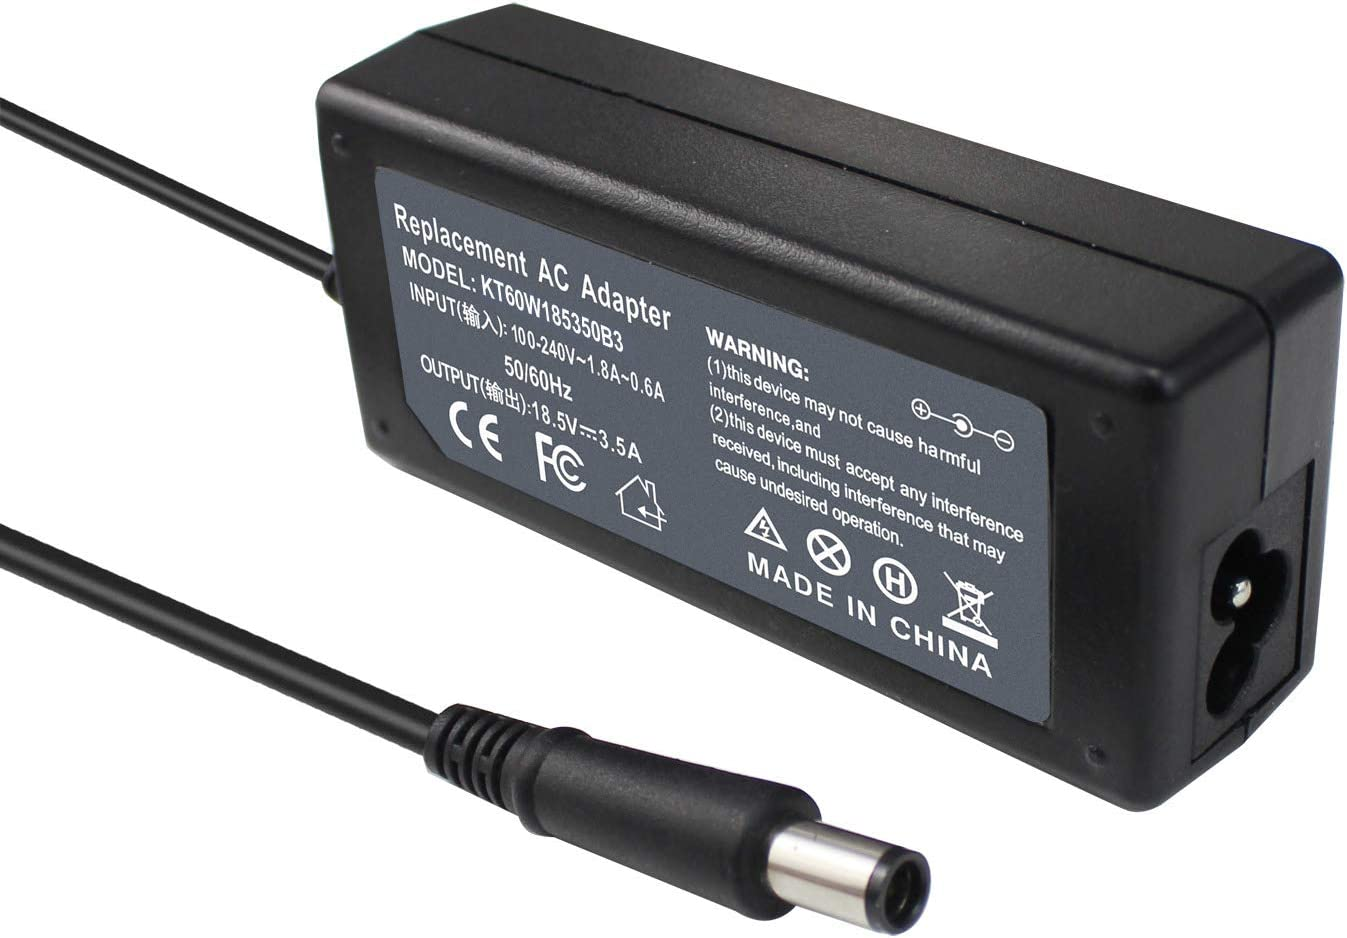 ROCKETY Compatible hp probook Power Adapter Replacement for hp Charger ProBook 450 430 440 445 455 470 G0 G1 G2 4540S 4545S HP Folio 9470m 9480m Laptop Notebook Cord Supply.